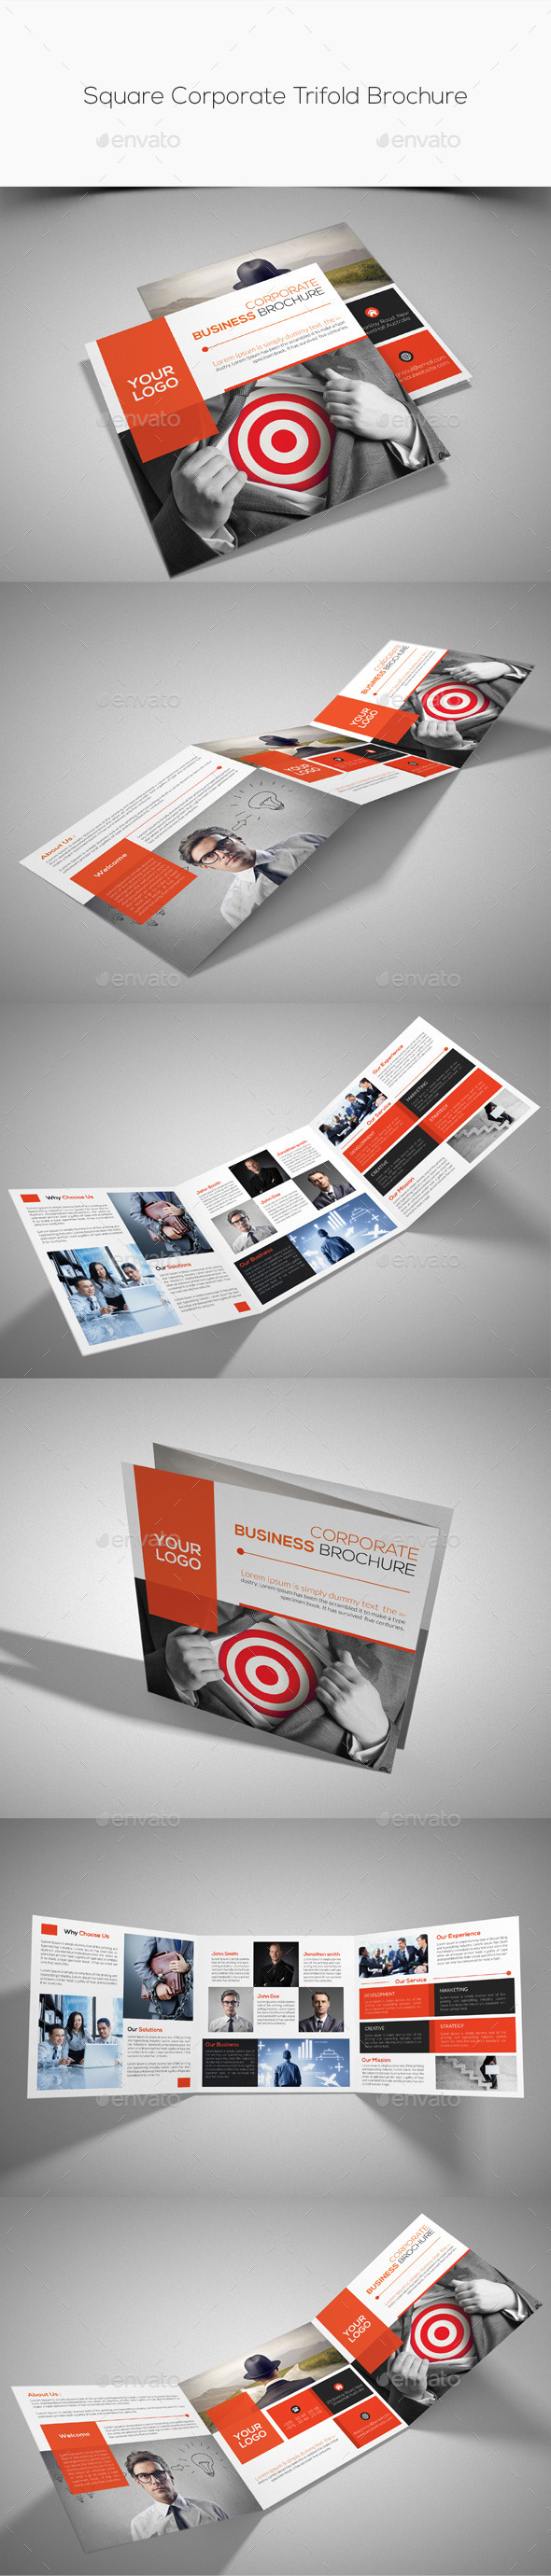 GraphicRiver Square Corporate Trifold Brochure 10349497